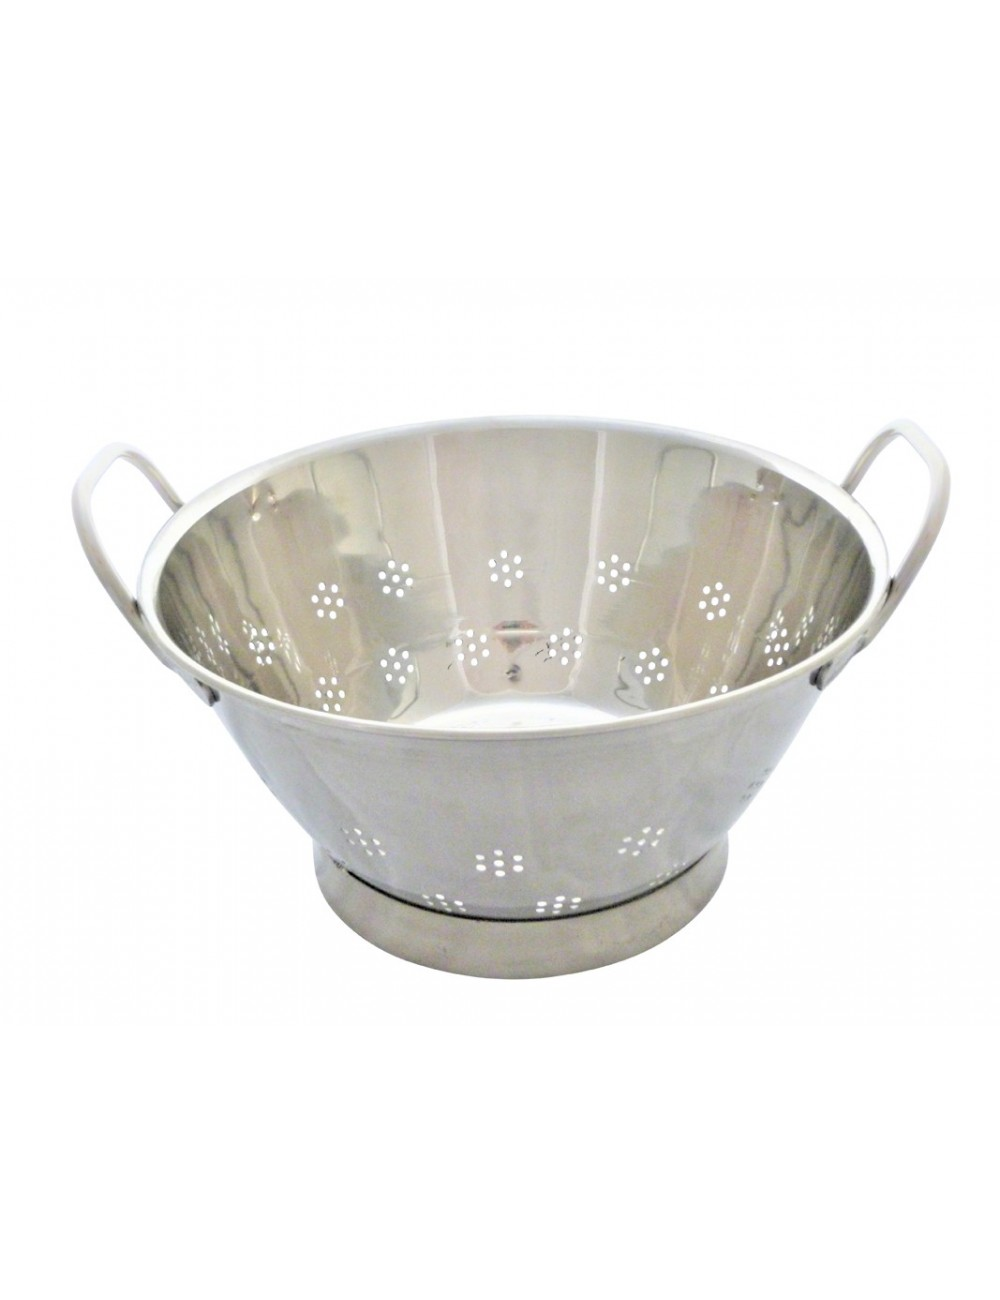 STAINLESS STEEL CONICAL STRAINER WITH CIRCULAR FOOT